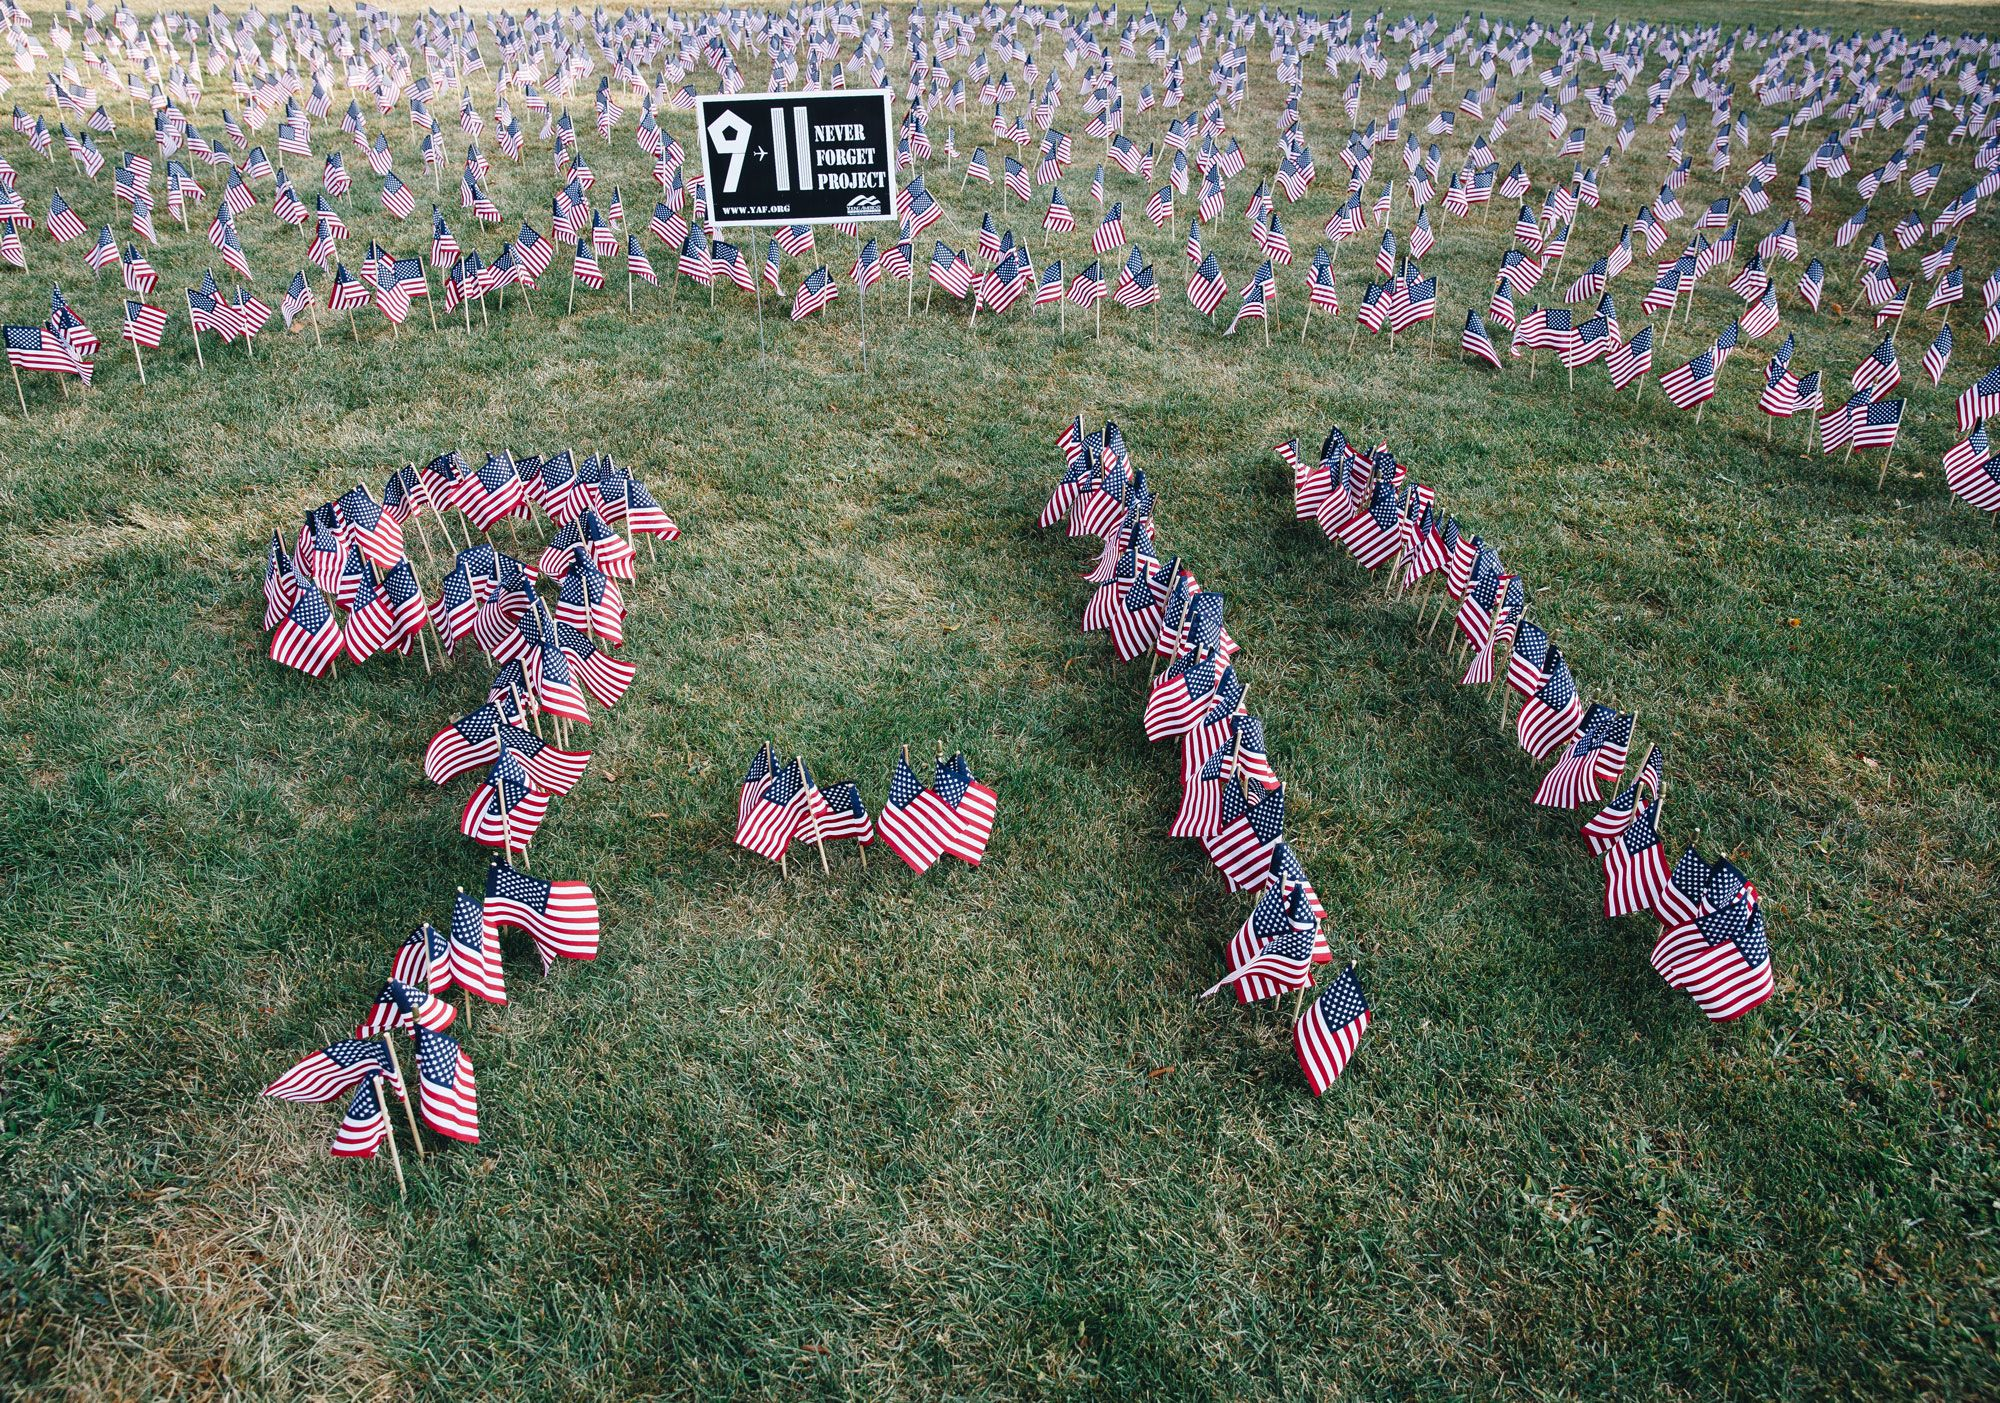 """""""May the God of hope fill you with all joy and peace as you trust in him, so that you may overflow with hope by the power of the Holy Spirit."""" --Romans 15:13. In 2016 the Wheaton College Young Americans for Freedom put together this moving display of flags representing each of the 2,996 precious lives that were lost on September 11, 2001."""